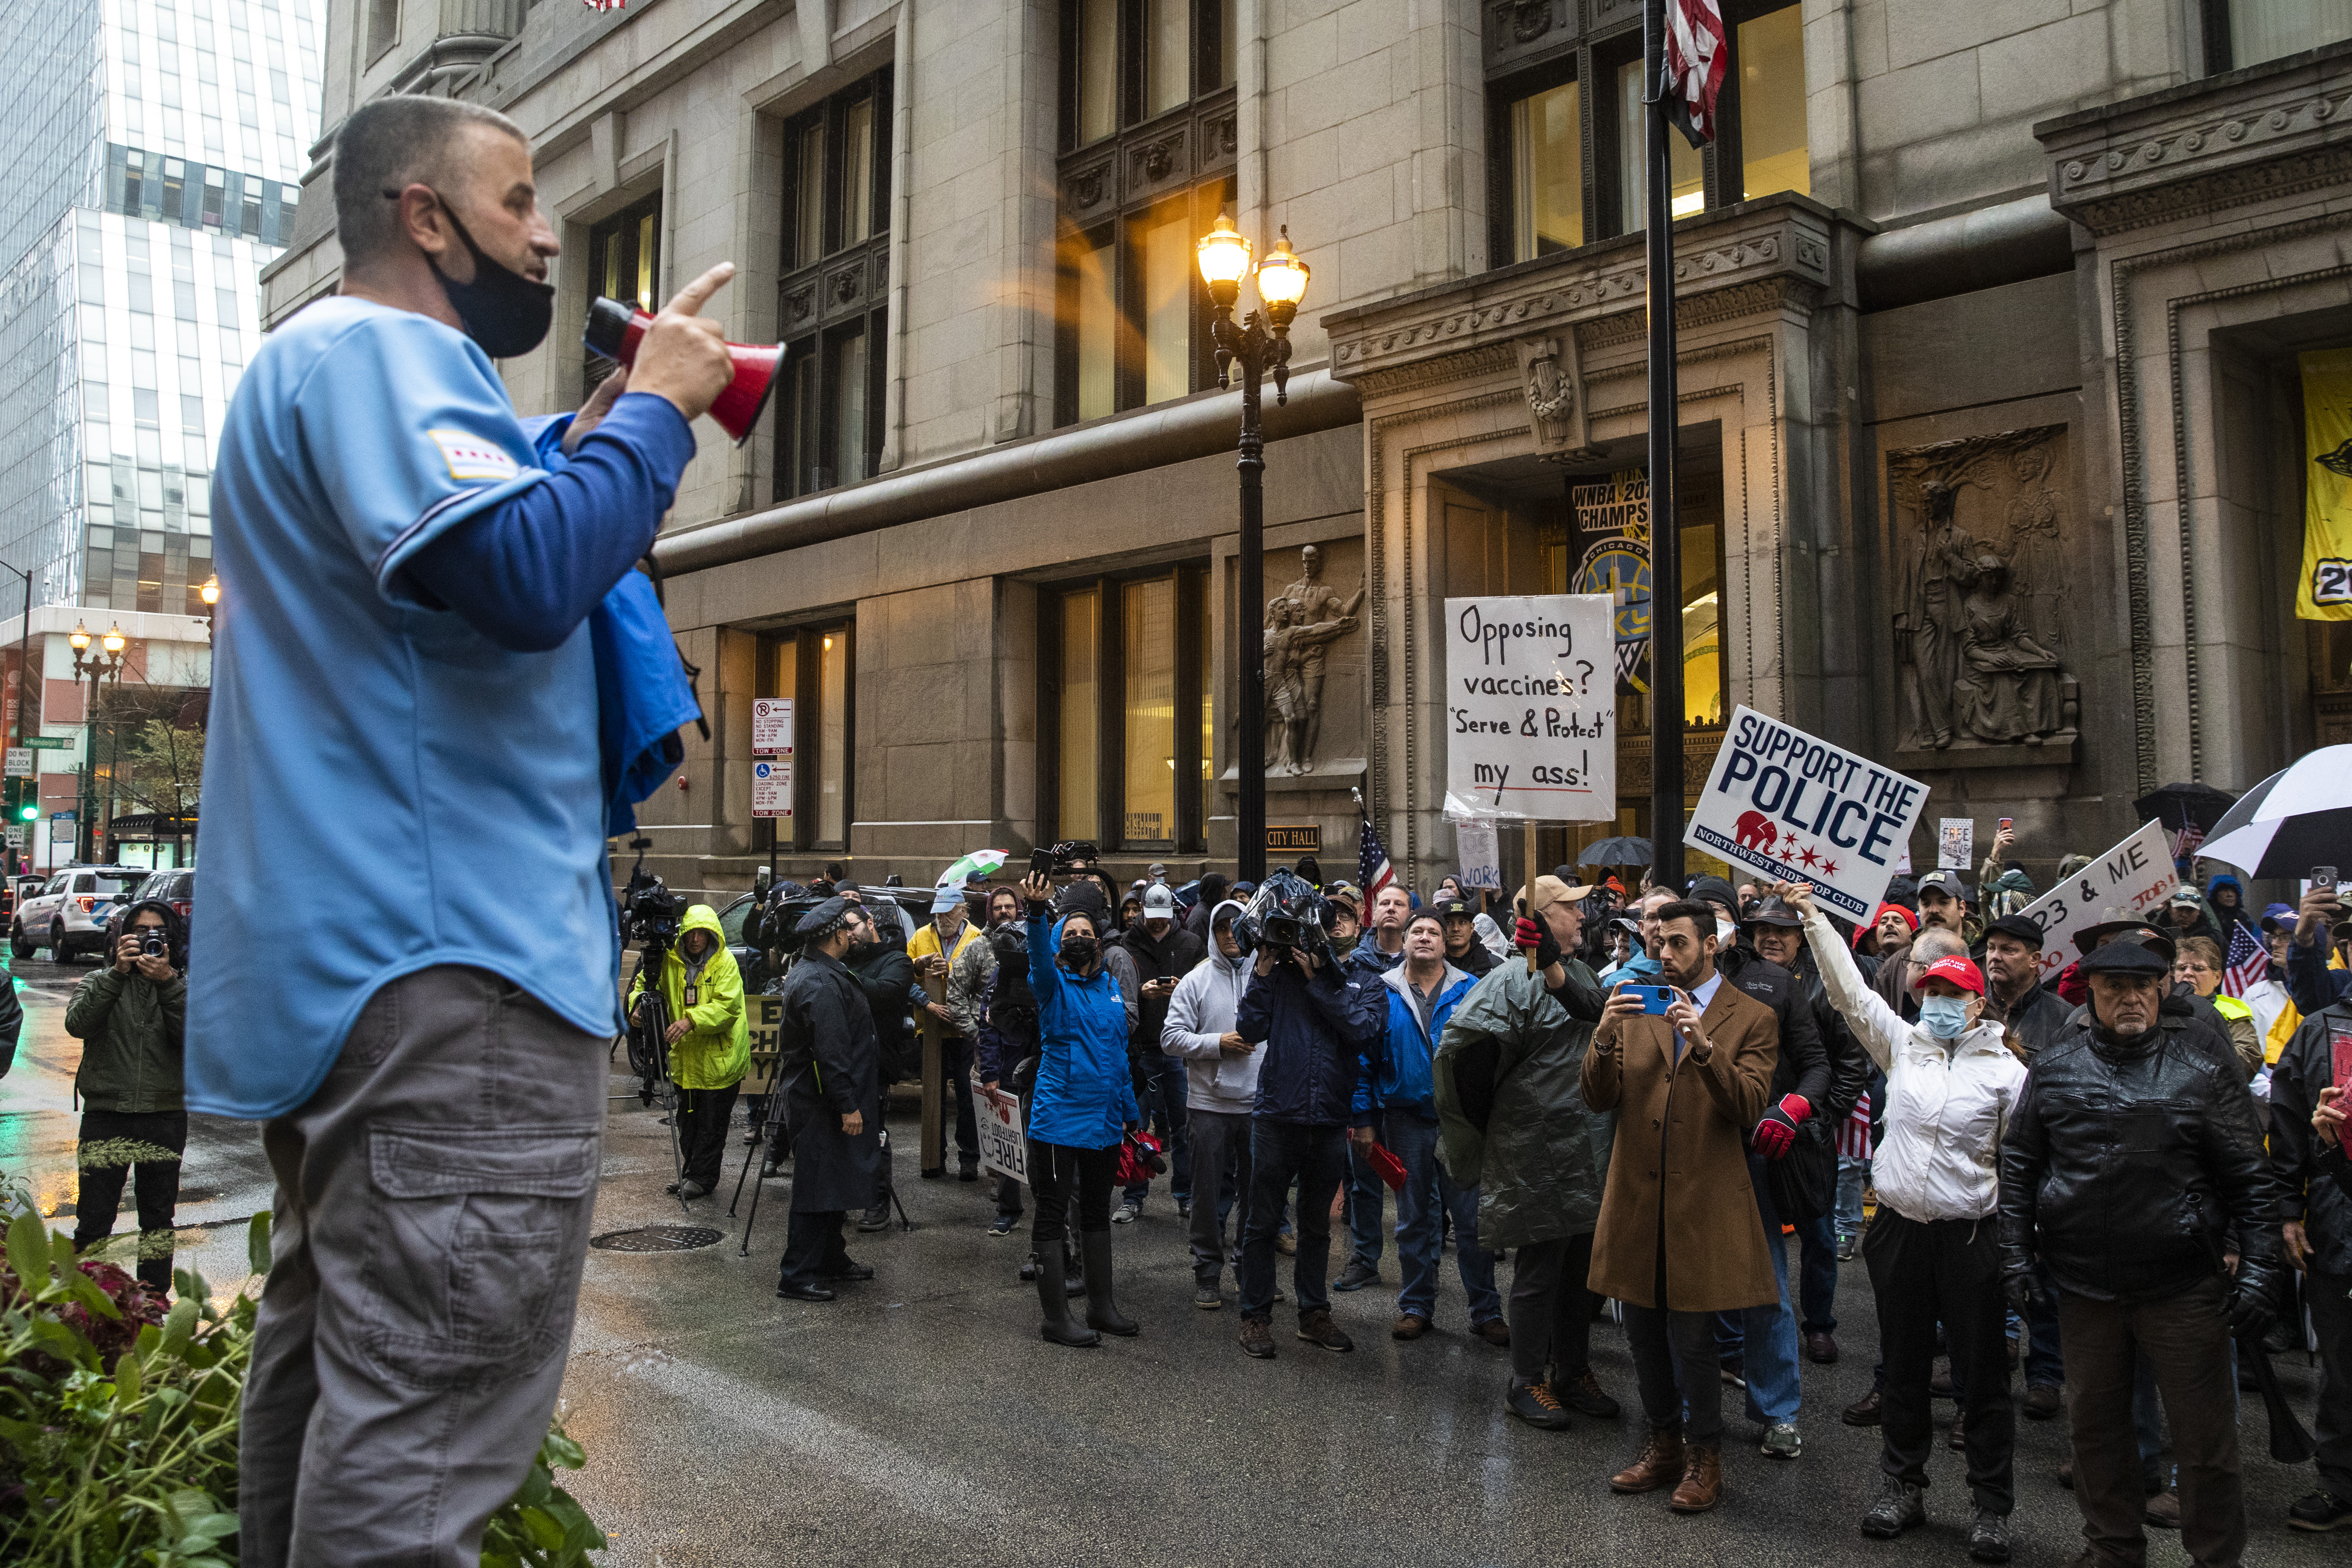 Fraternal Order of Police Lodge 7 President John Catanzara addresses a group of union protesters and their supporters outside City Hall as they rally against a requirement that police, like all other city employees, get the COVID-19 vaccine.